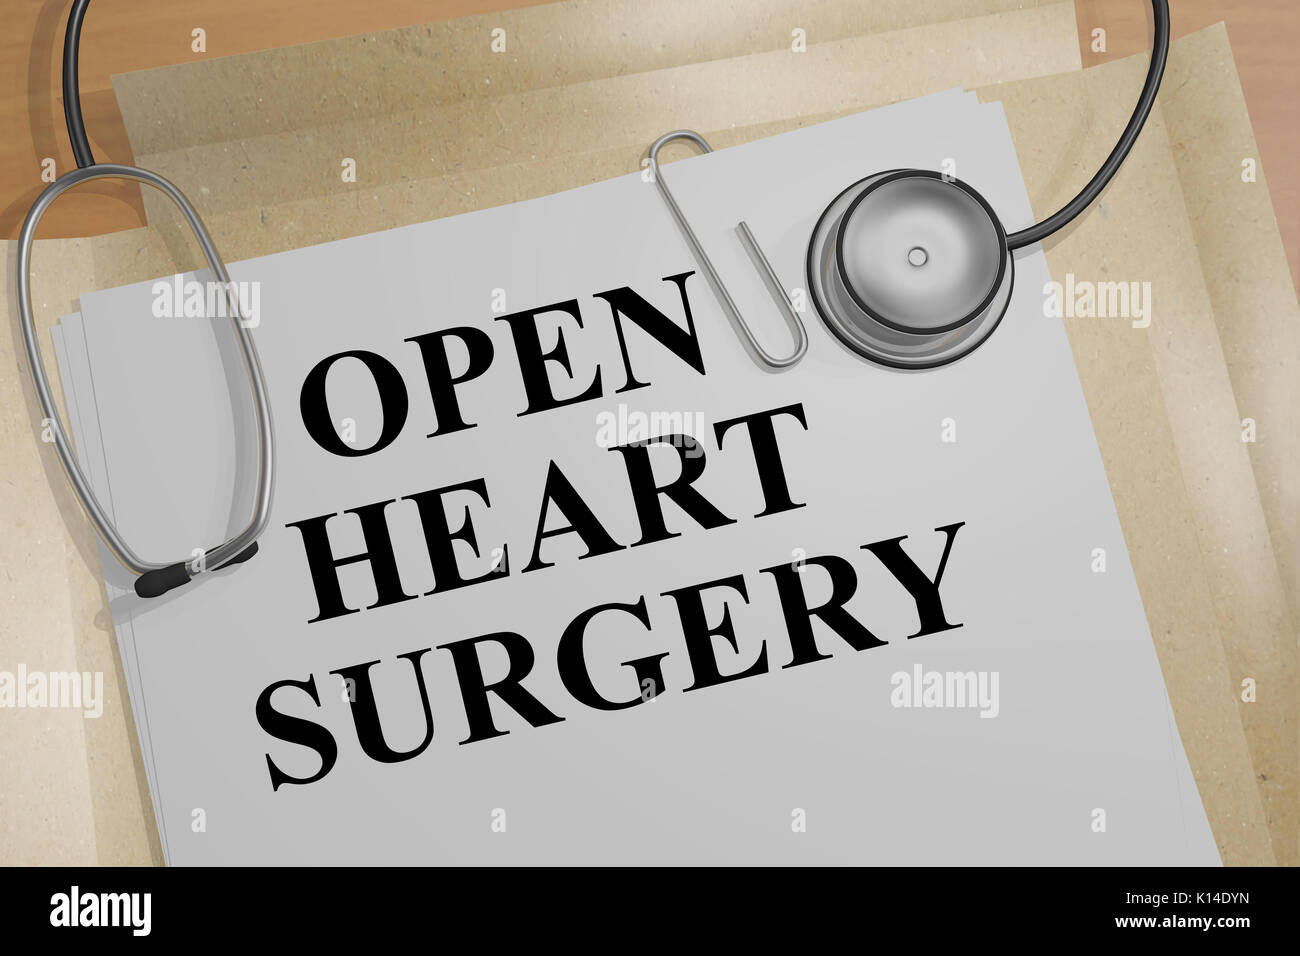 3D illustration of 'OPEN HEART SURGERY' title on a medical document - Stock Image